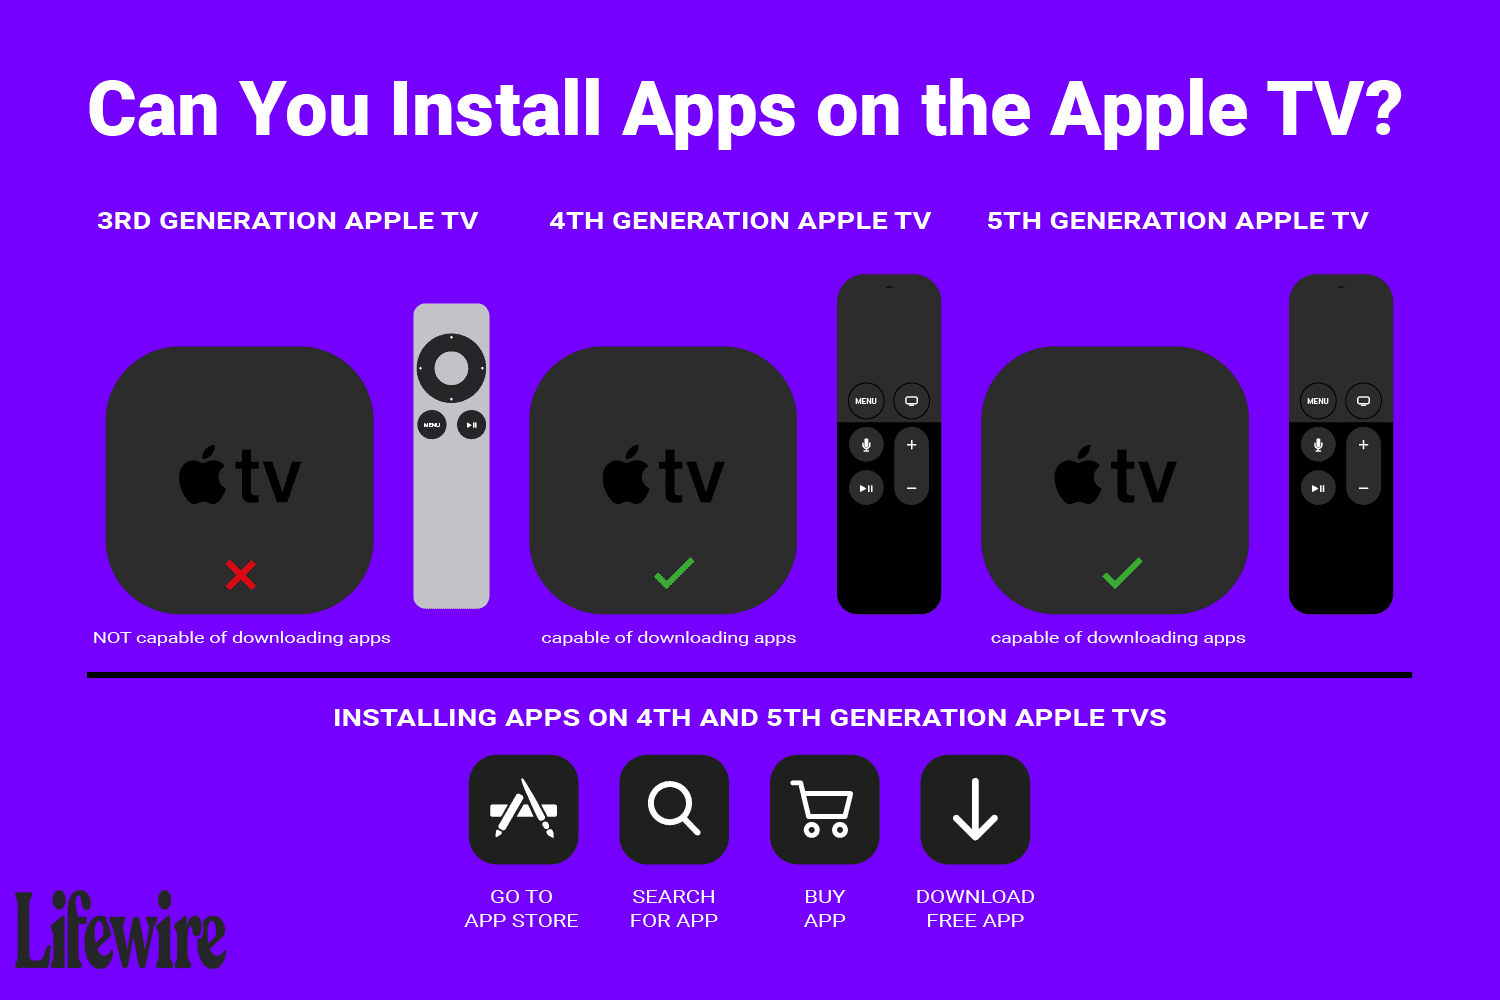 Can You Install Apps On The Apple Tv